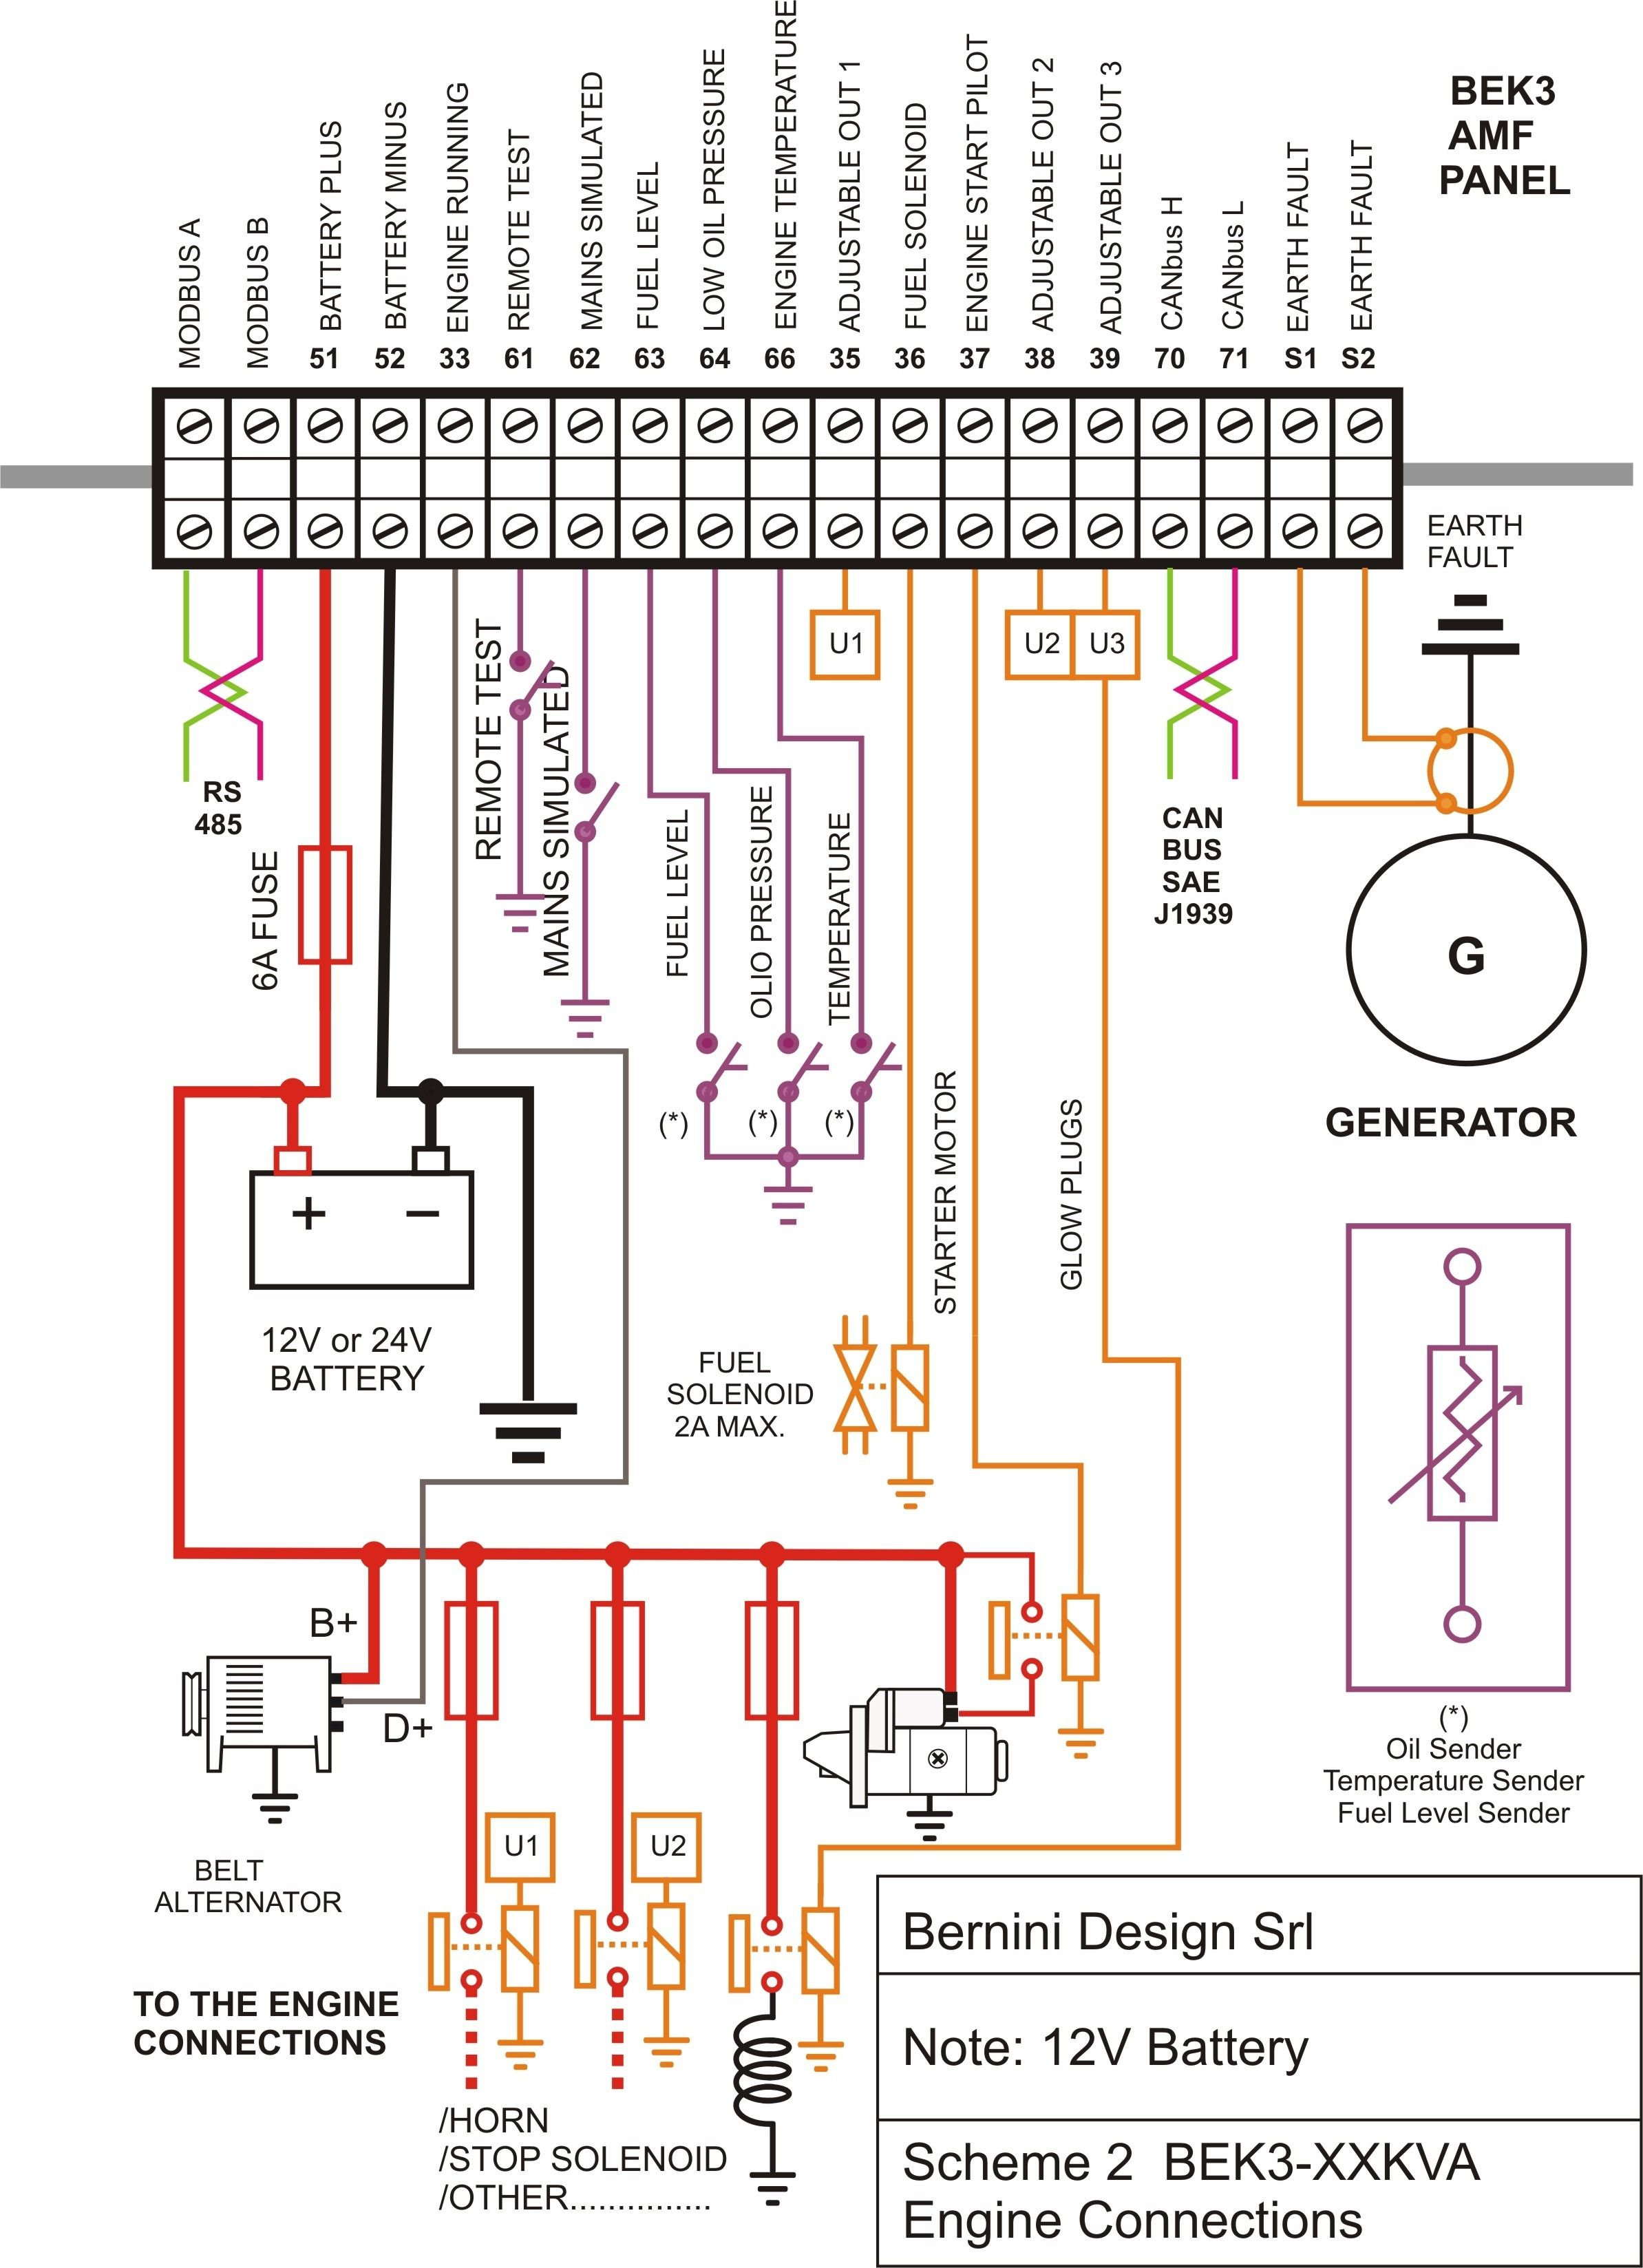 Basic Electrical Wiring Diagram Pdf | WiringDiagram.org